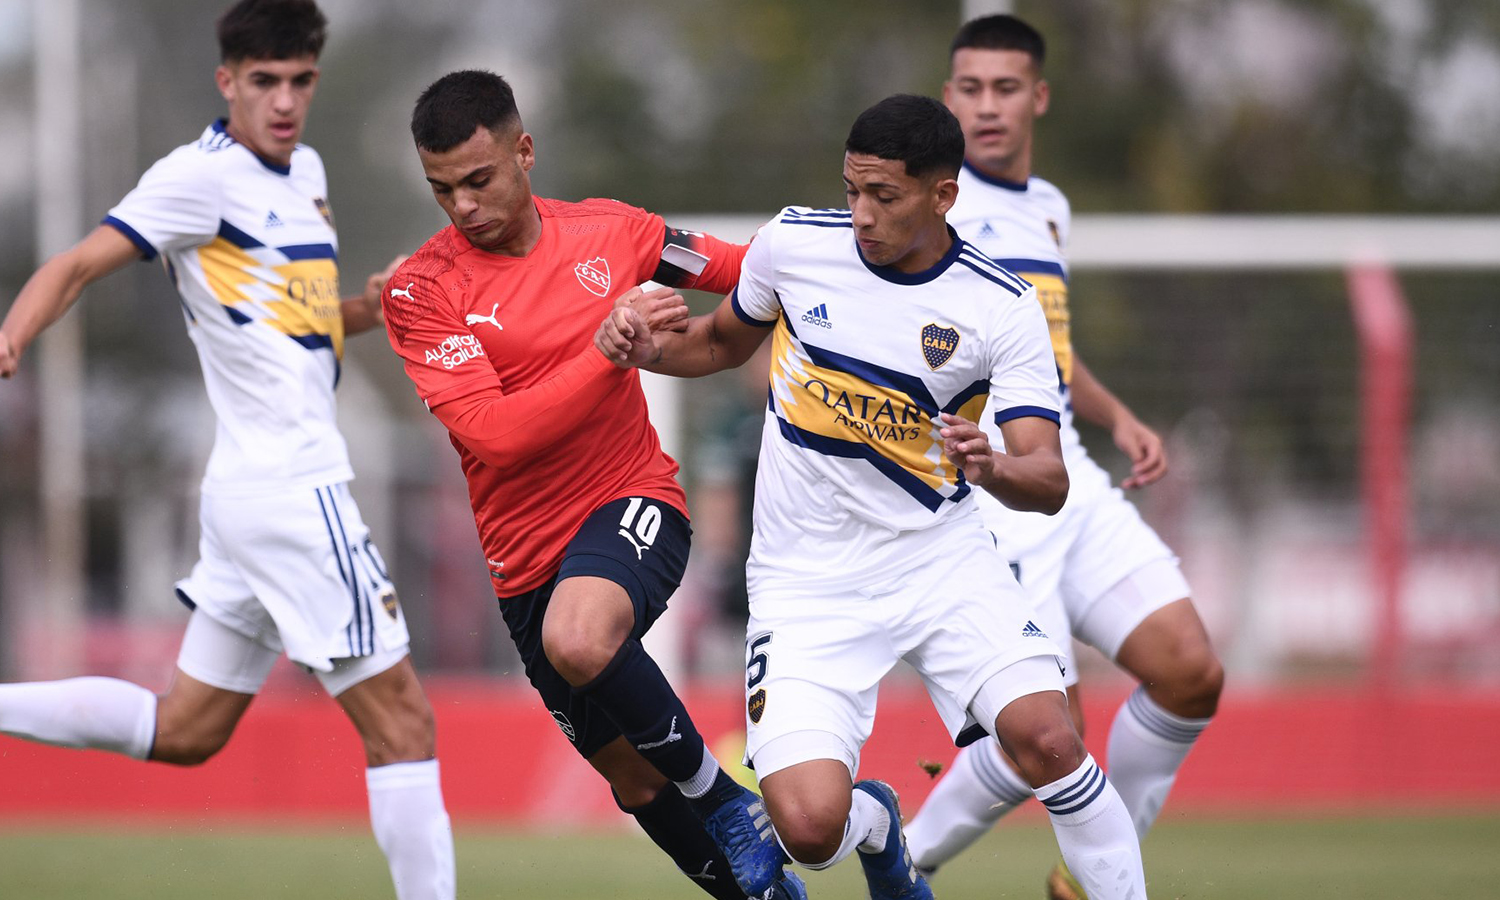 Independiente Boca Reserva